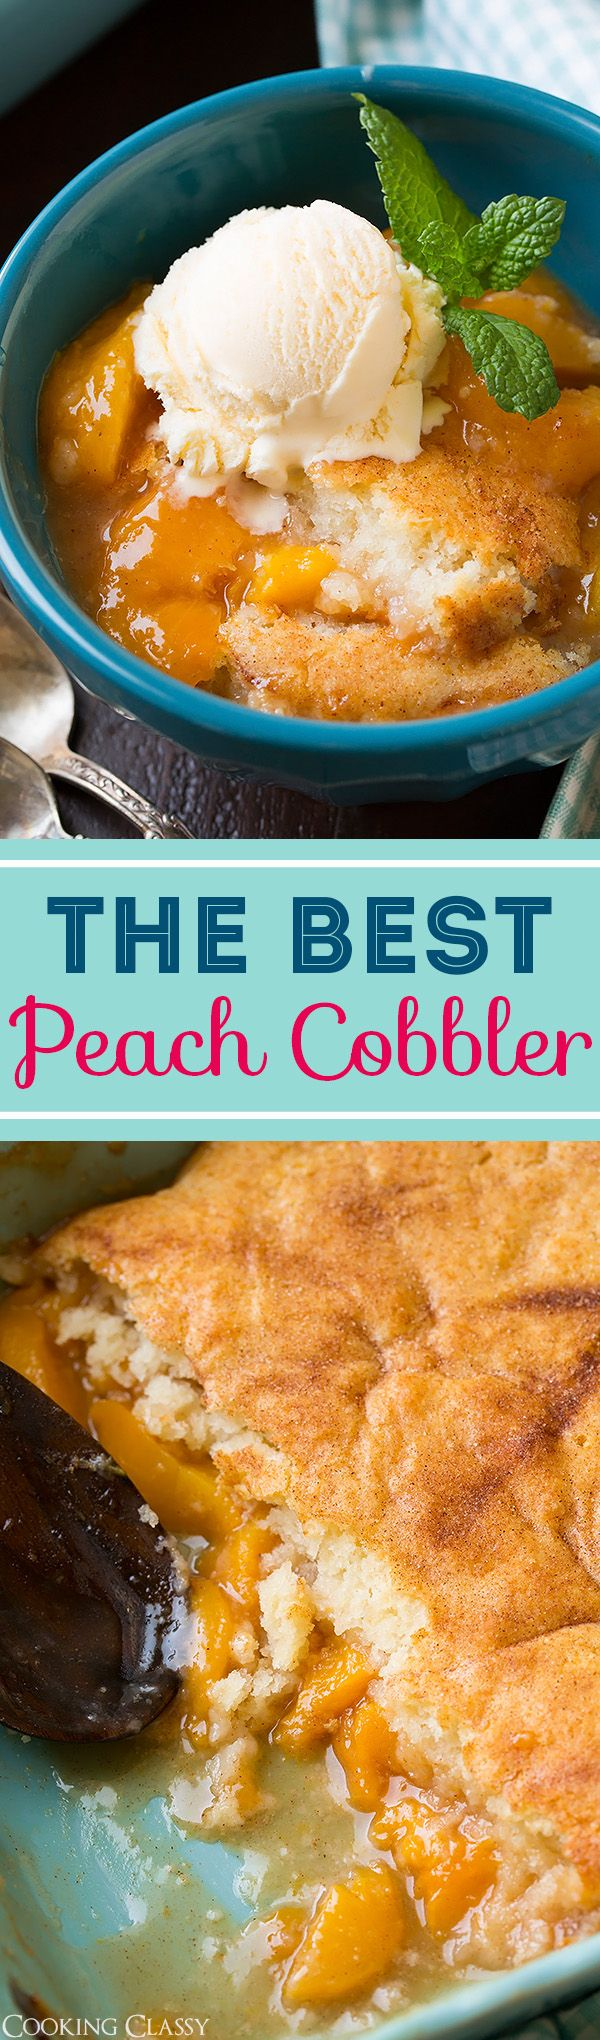 Peach Cobbler - I've tried so many different peach cobbler recipes and this one is hands down the BEST! Light and fluffy, perfectly buttery, packed with fresh peaches and simply delicious!